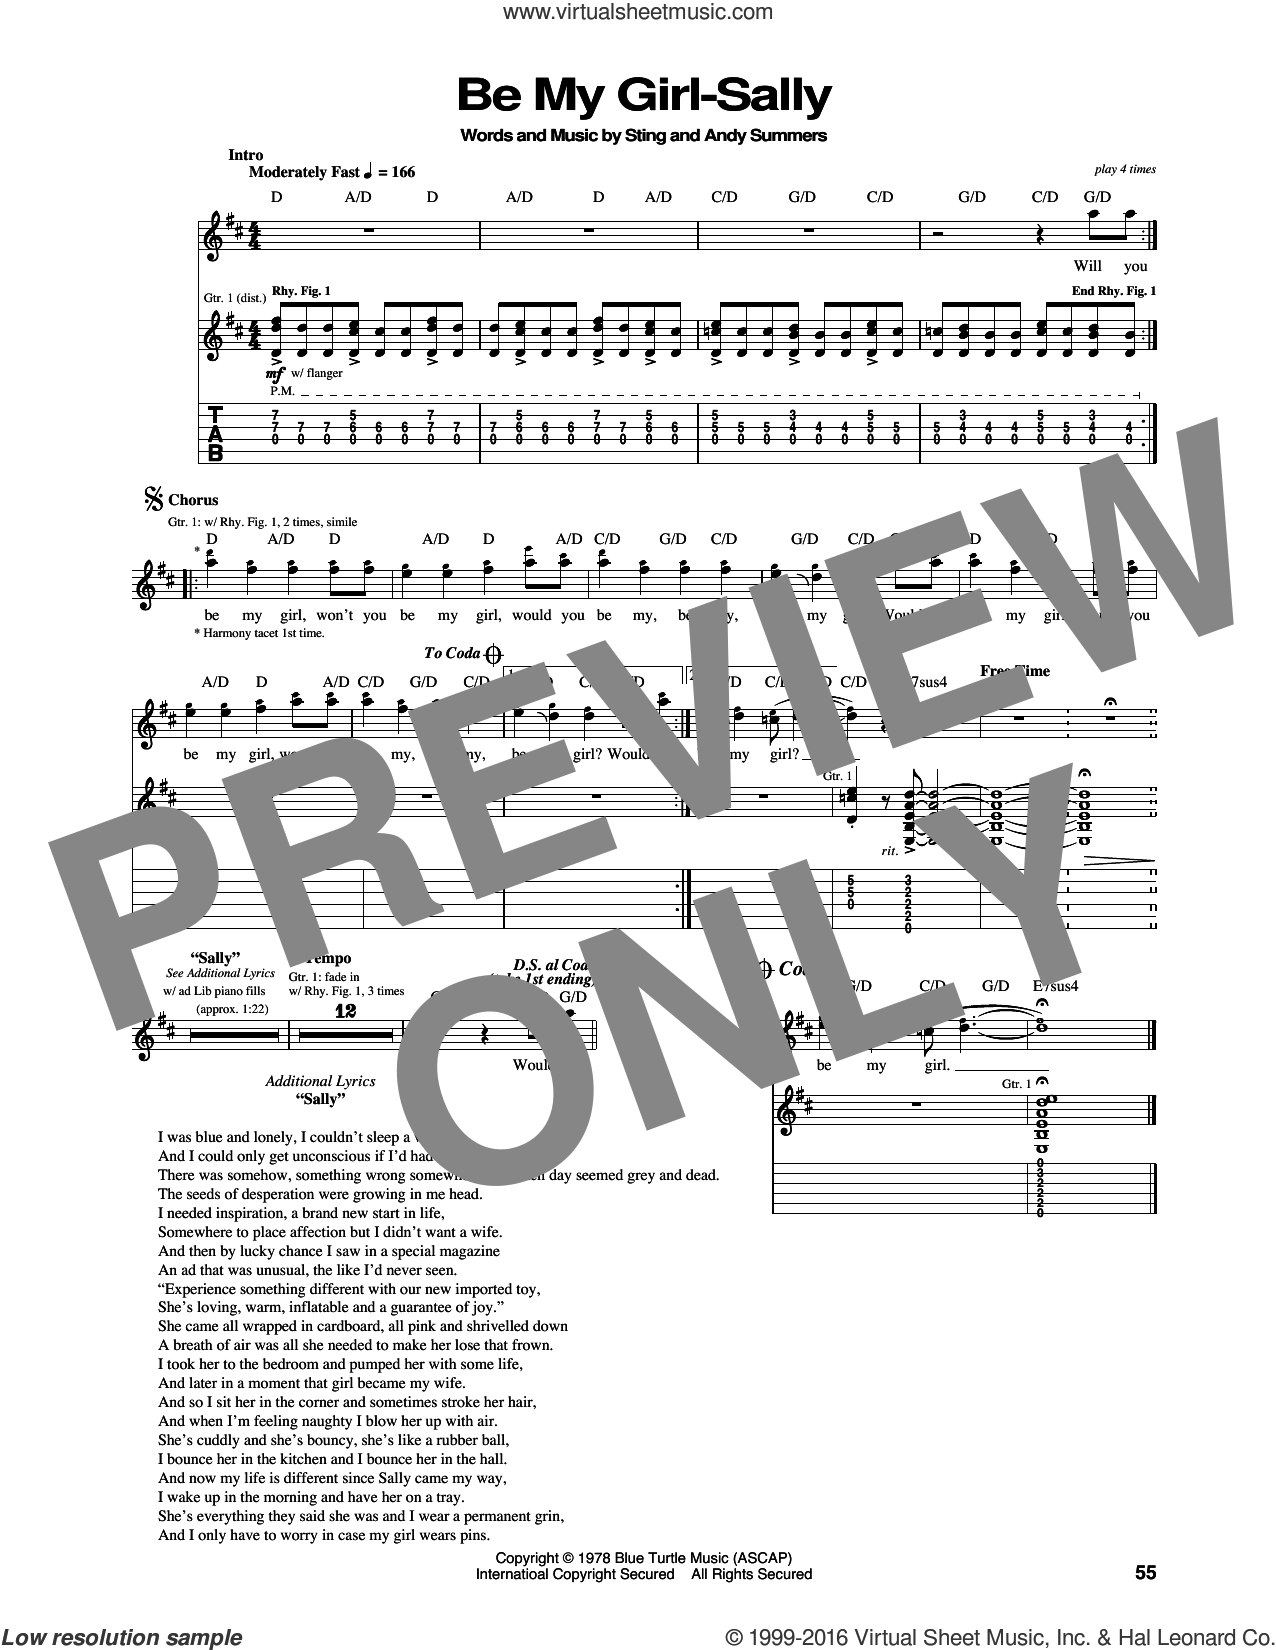 Be My Girl sheet music for guitar (tablature) by The Police, Andy Summers and Sting, intermediate skill level